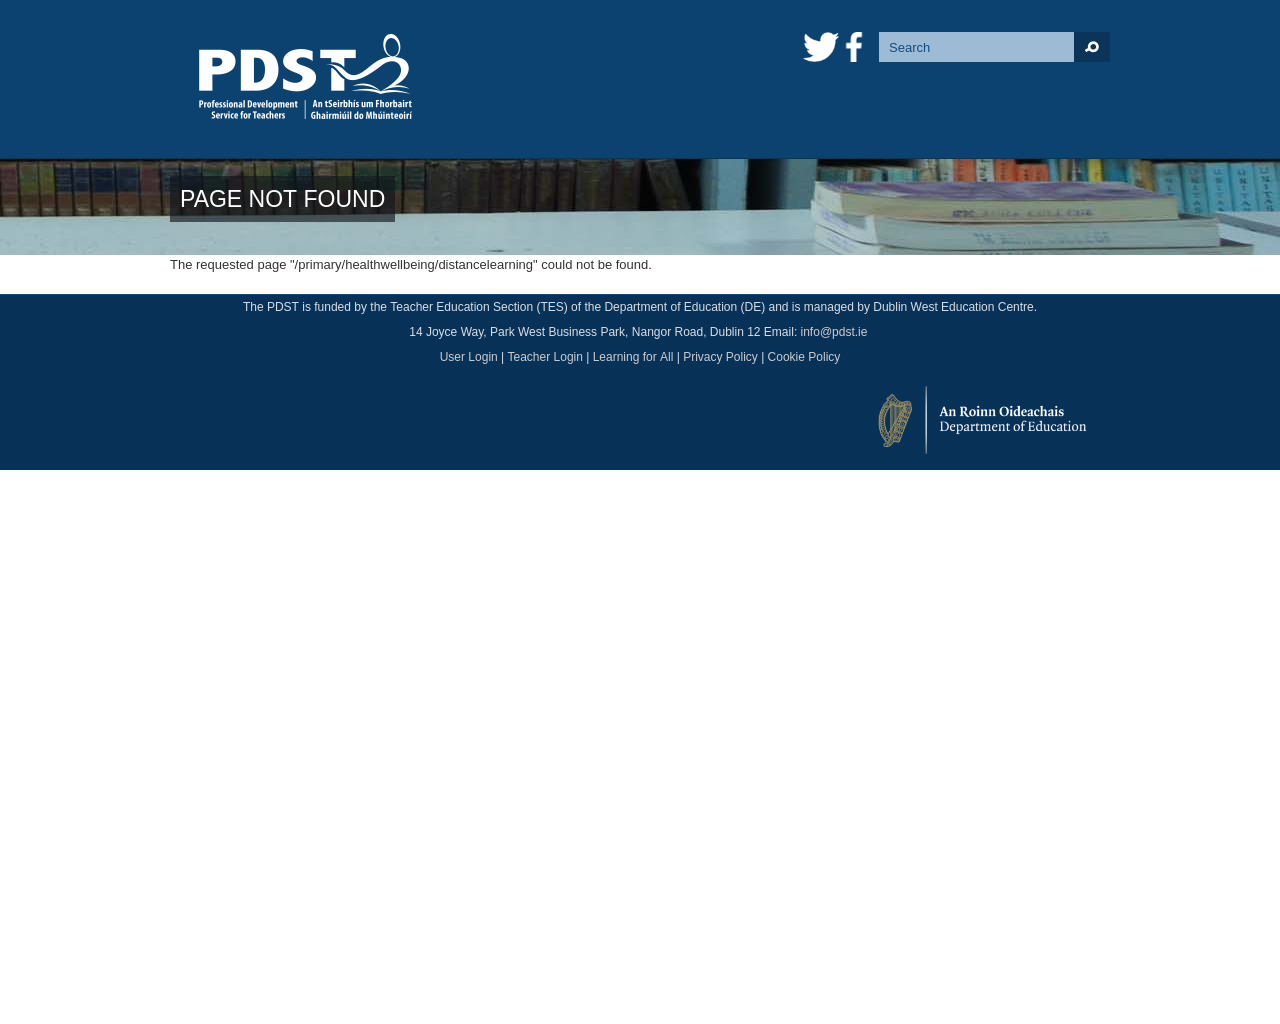 PDST List of Online Resources